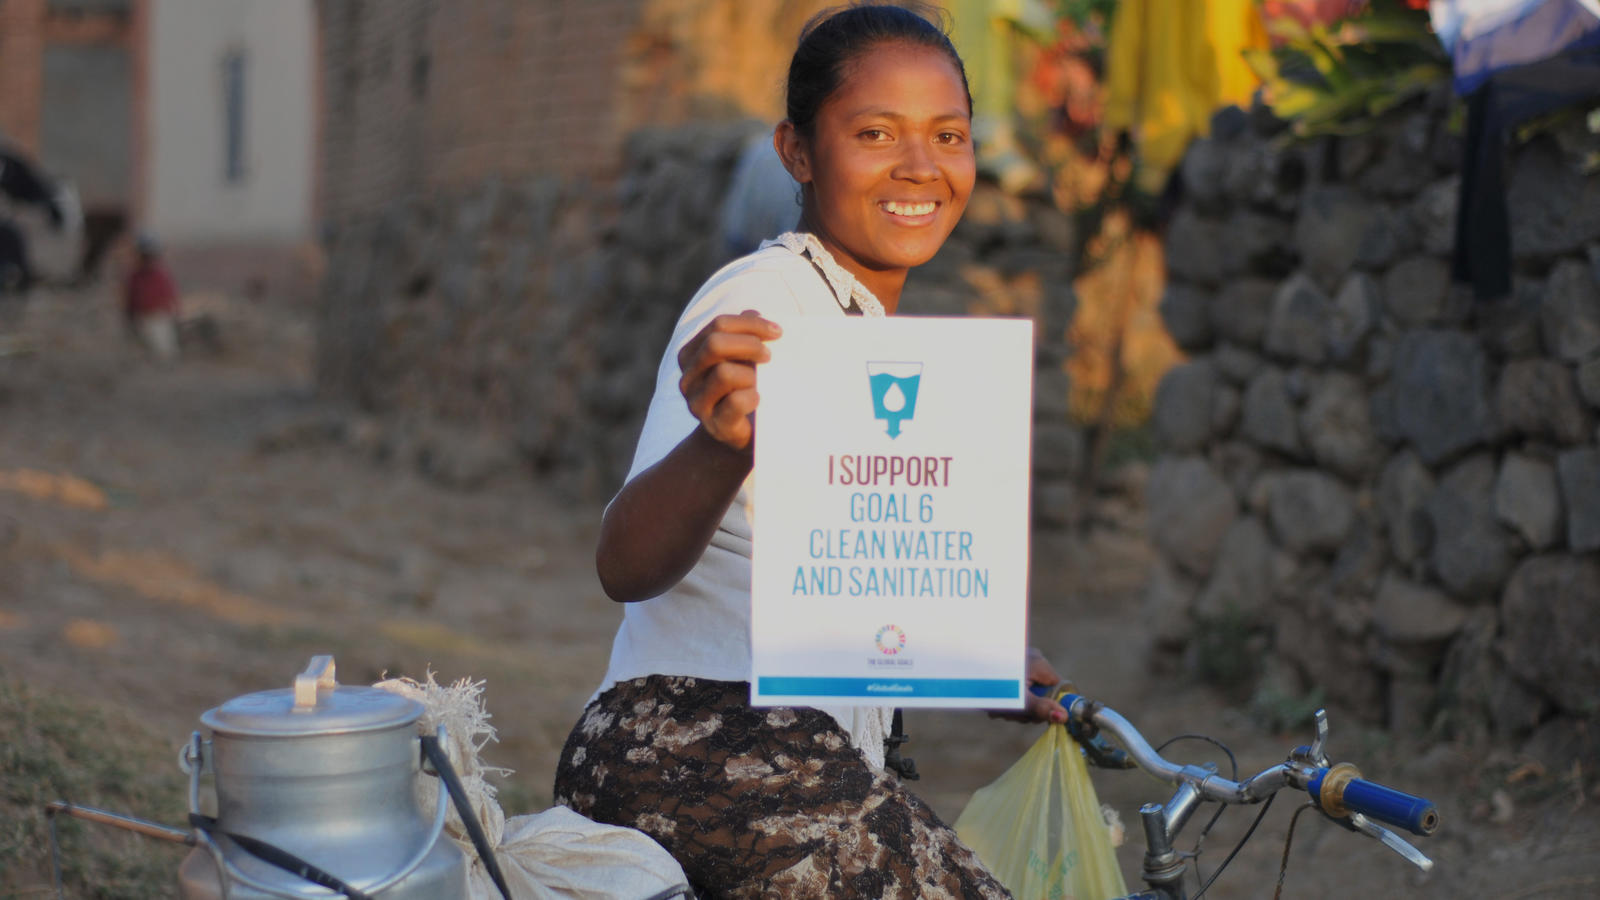 "Laza, 23 years old, supporting Global Goal six 'Clean water and sanitation."" Ambohitrinilahy village, Vakinankaratra region, Madagascar. September 2015."